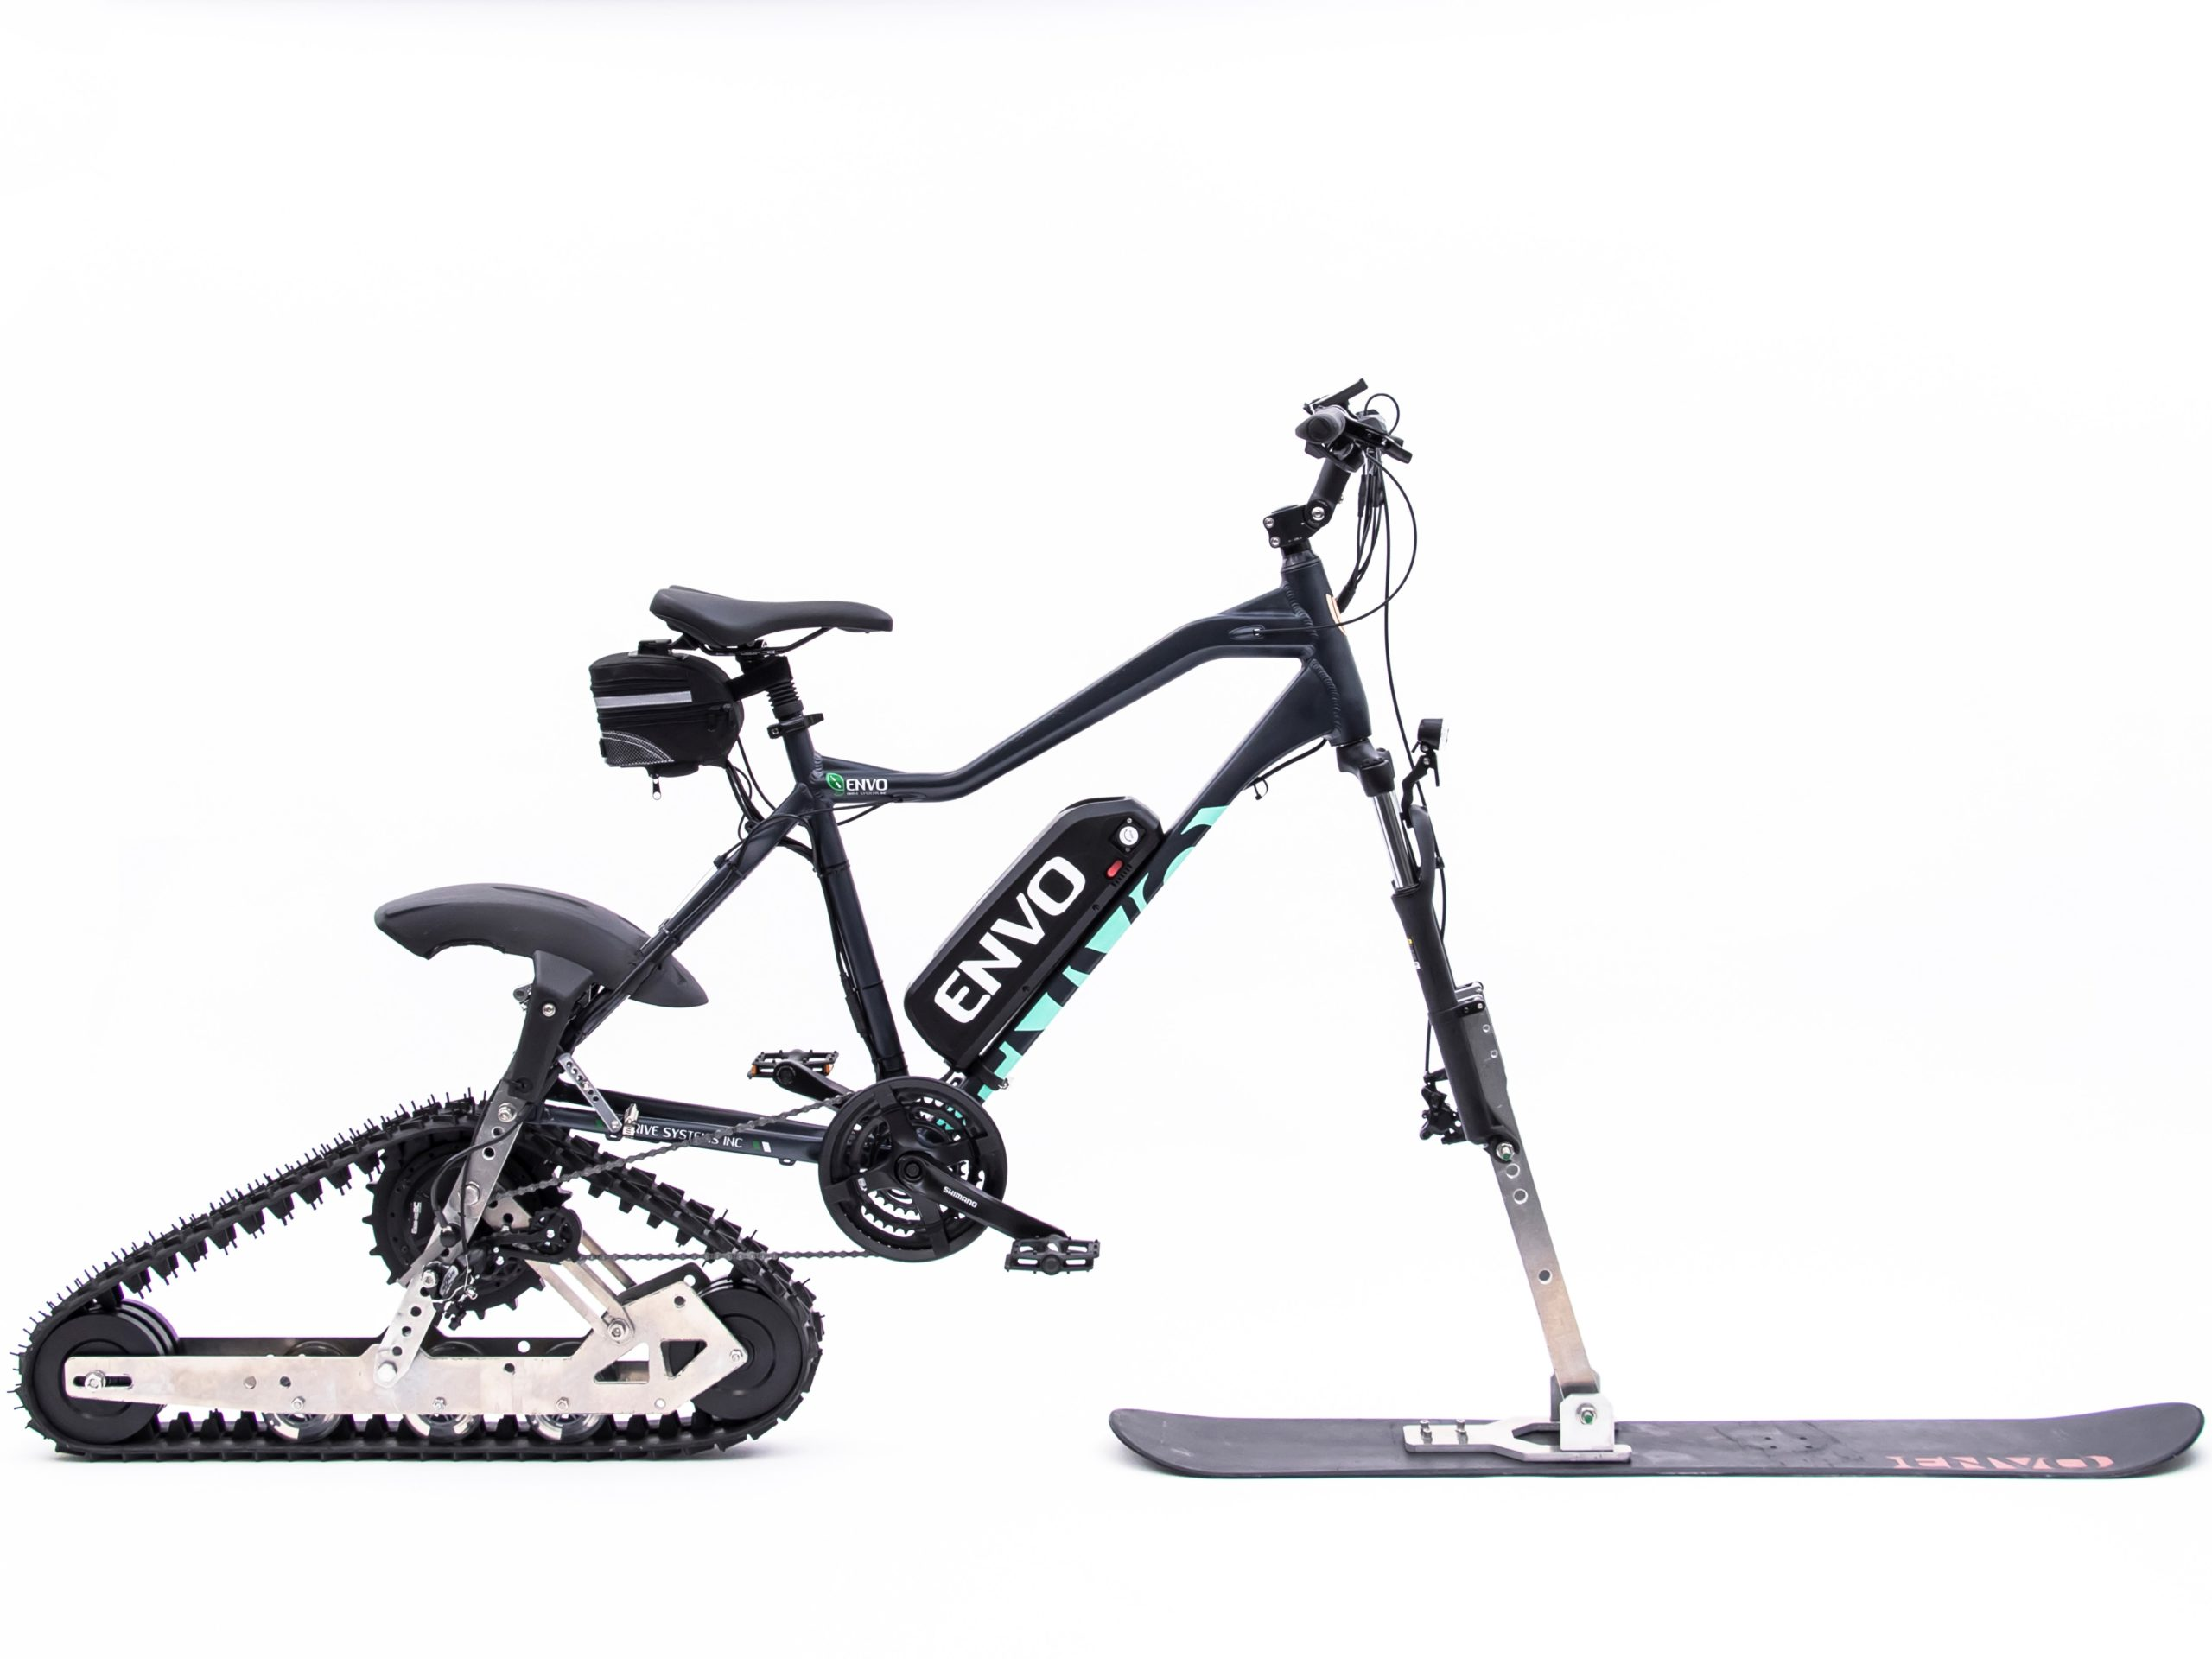 ENVO SET TO LAUNCH LOW COST SNOW BIKE TO MARKET